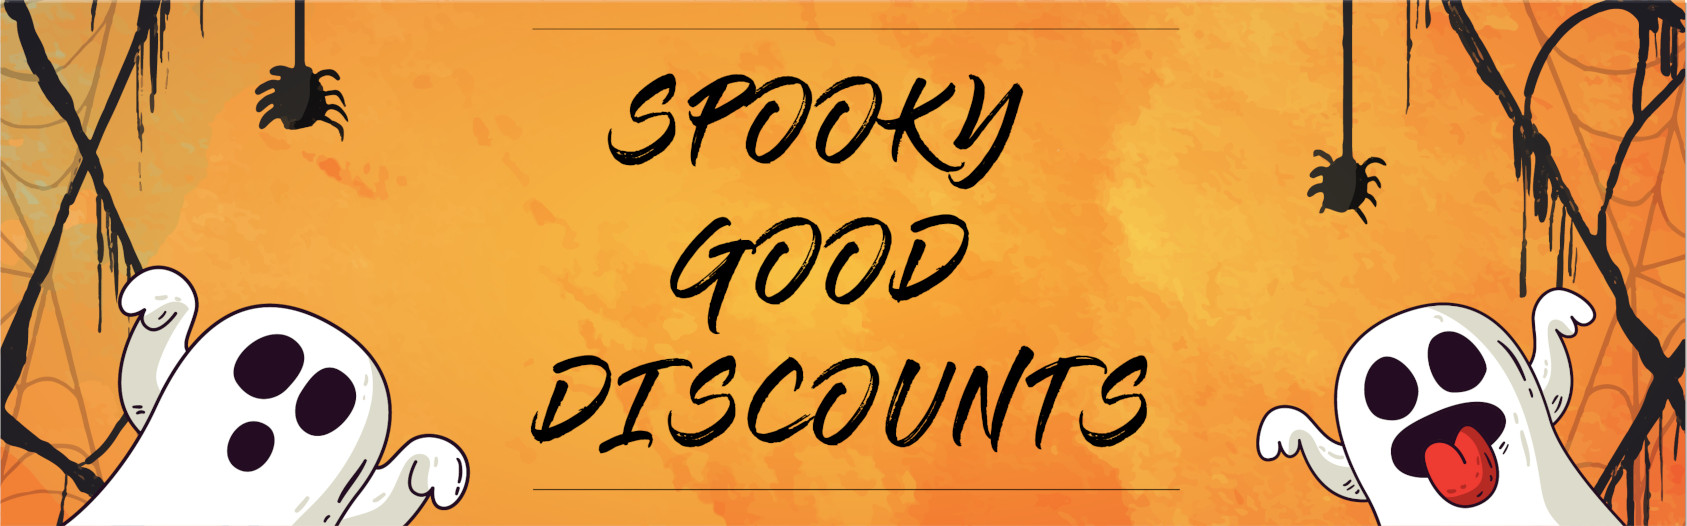 SPOOKY GOOD DISCOUNTS AT INFO & TICKET CENTER Banner